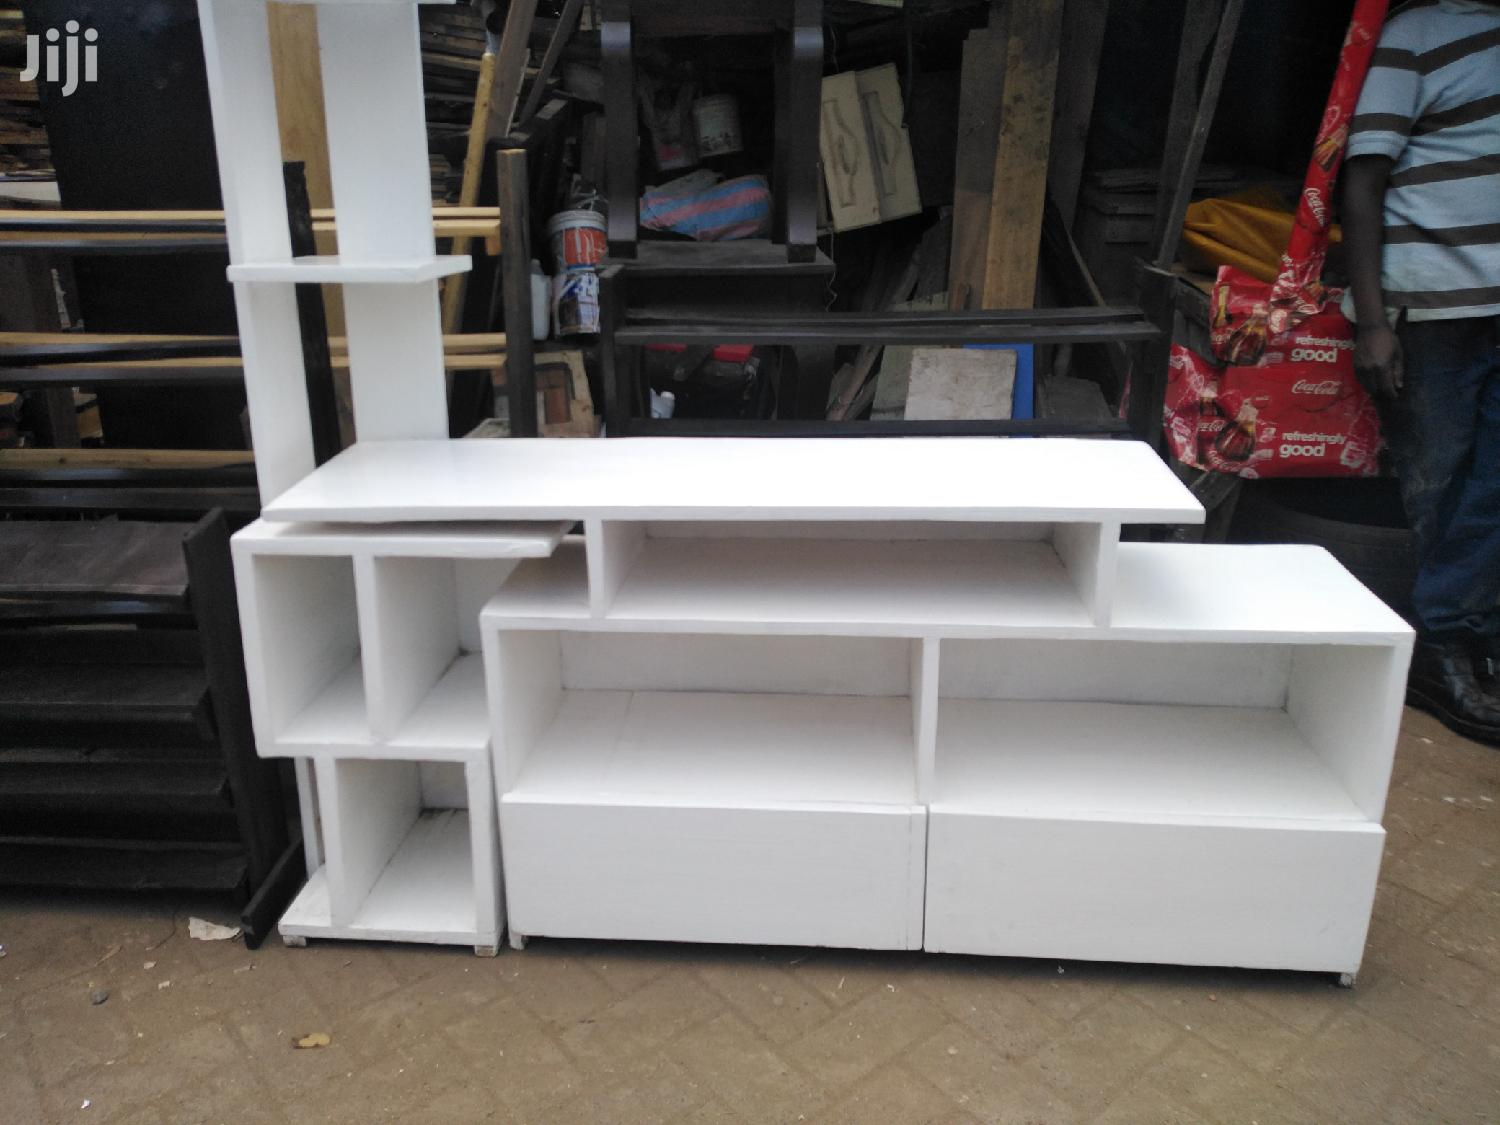 Unique Tv Stands | Furniture for sale in Nairobi South, Nairobi, Kenya